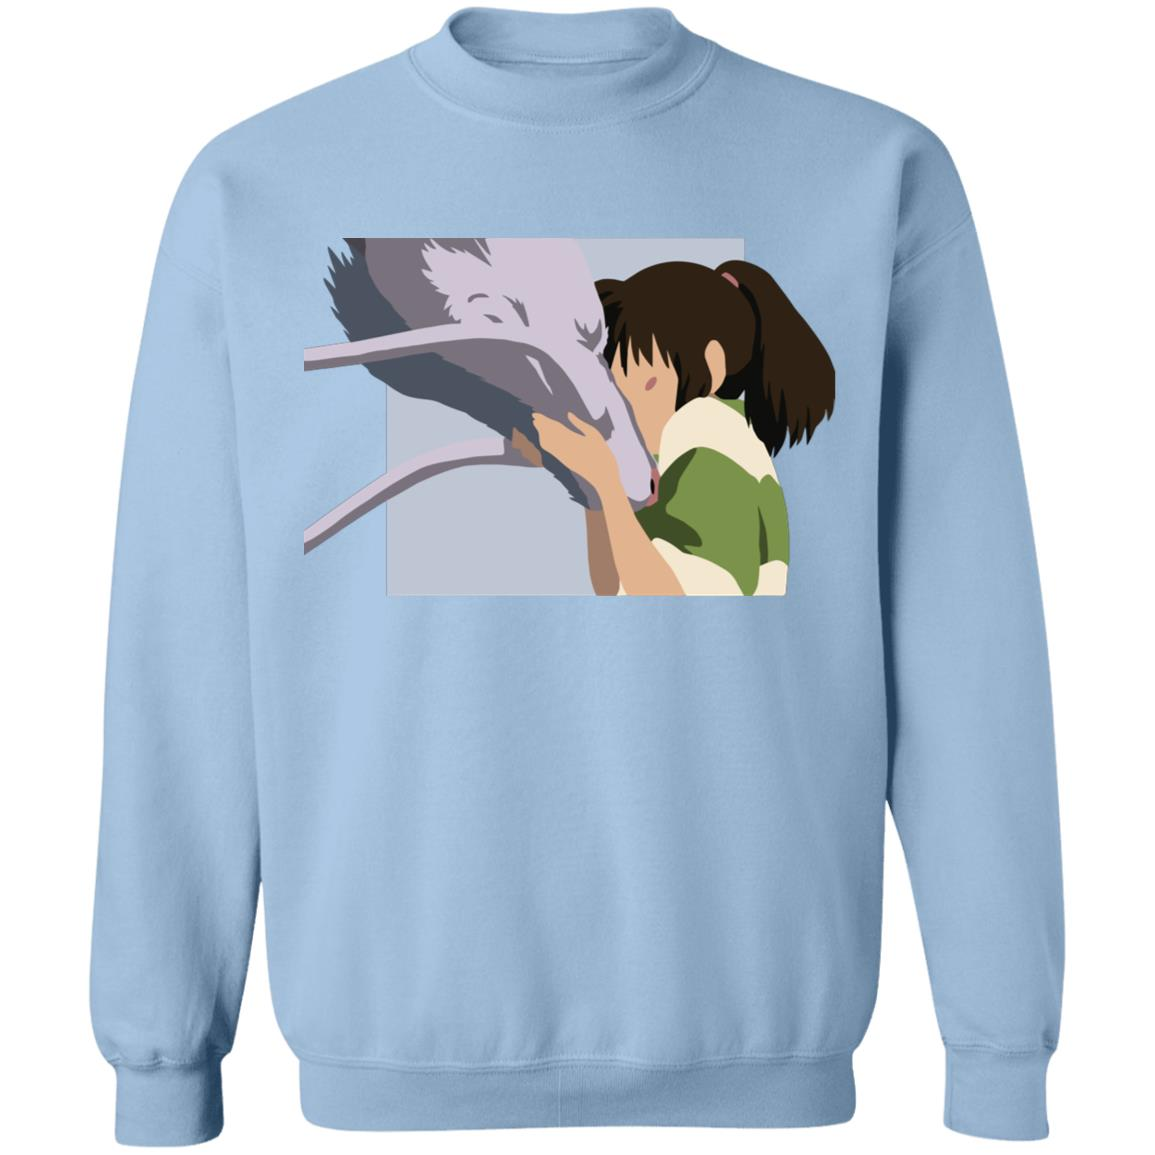 Spirited Away Haku and Chihiro Graphic Sweatshirt